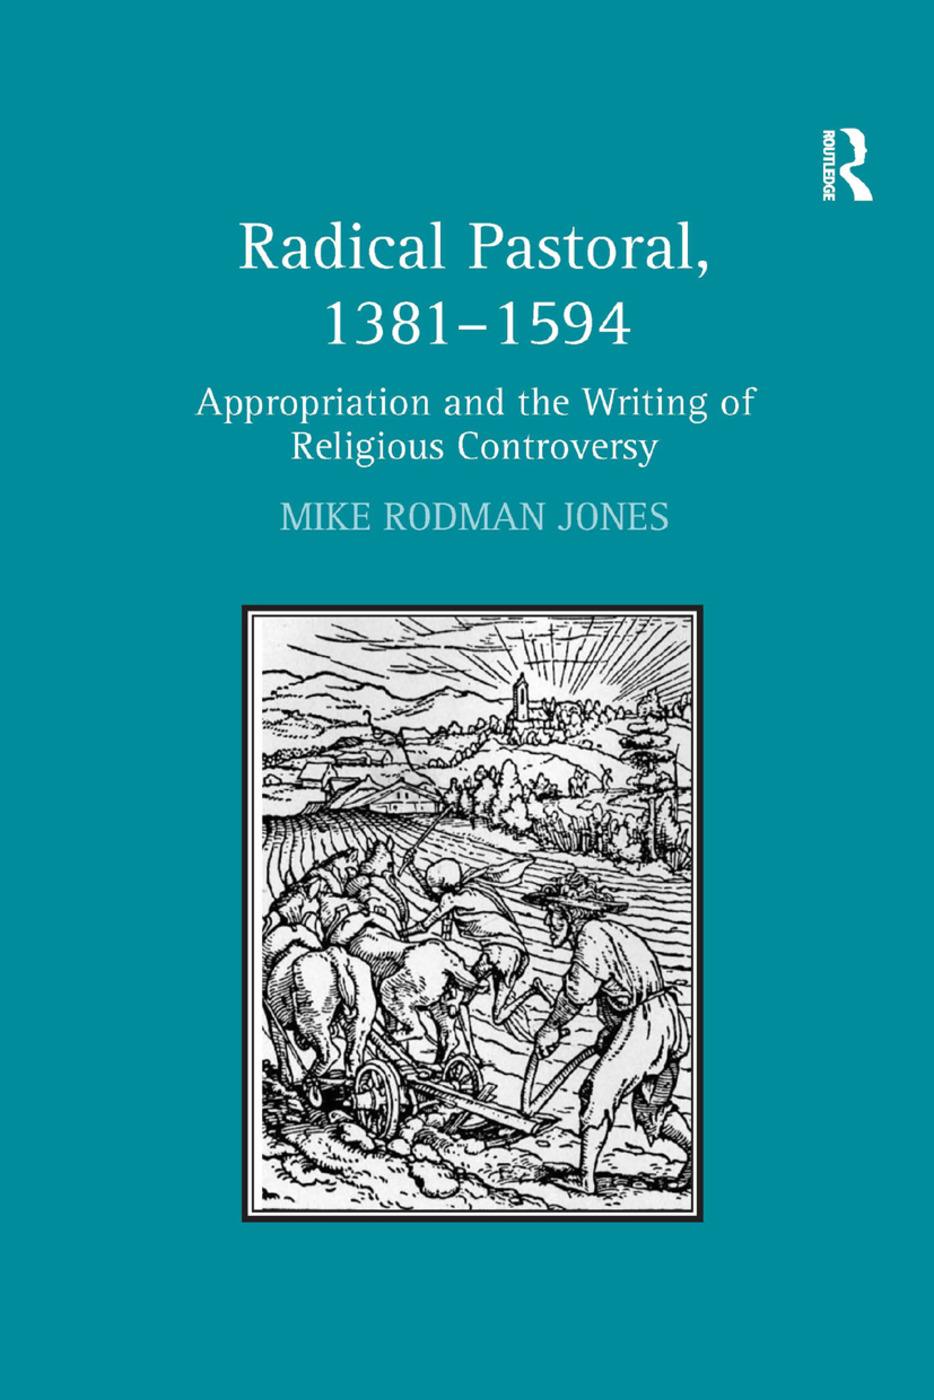 Radical Pastoral, 1381–1594: Appropriation and the Writing of Religious Controversy book cover